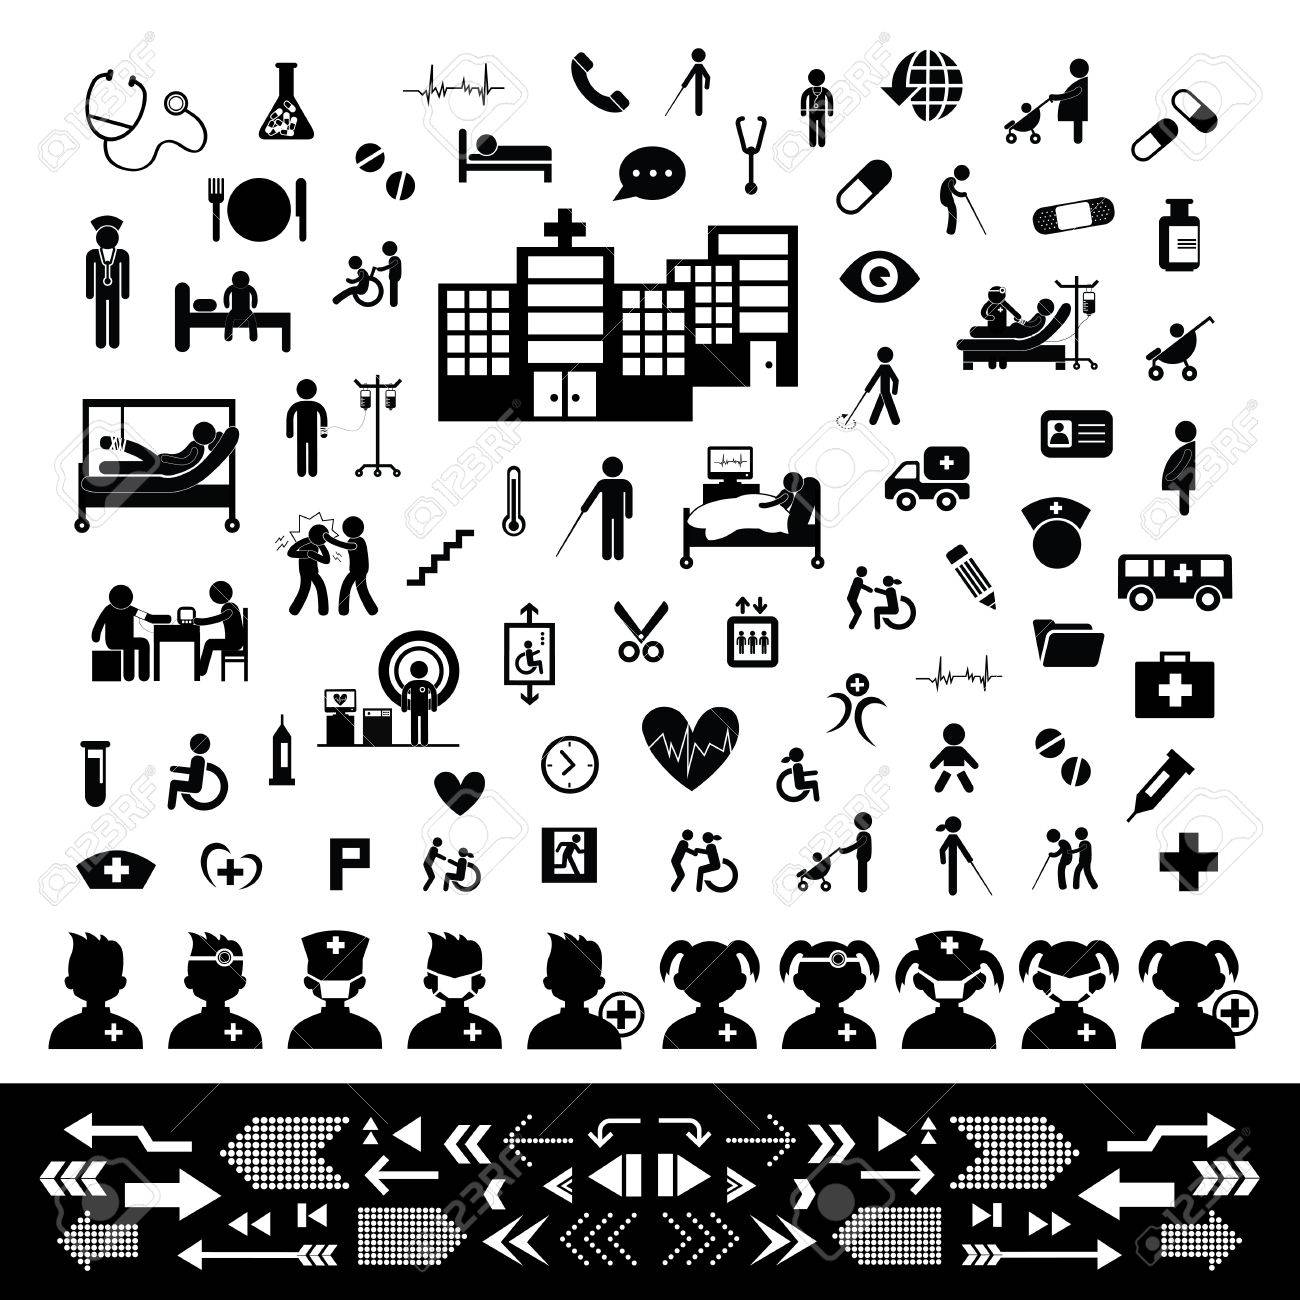 doctor and hospital icon set - 35759492